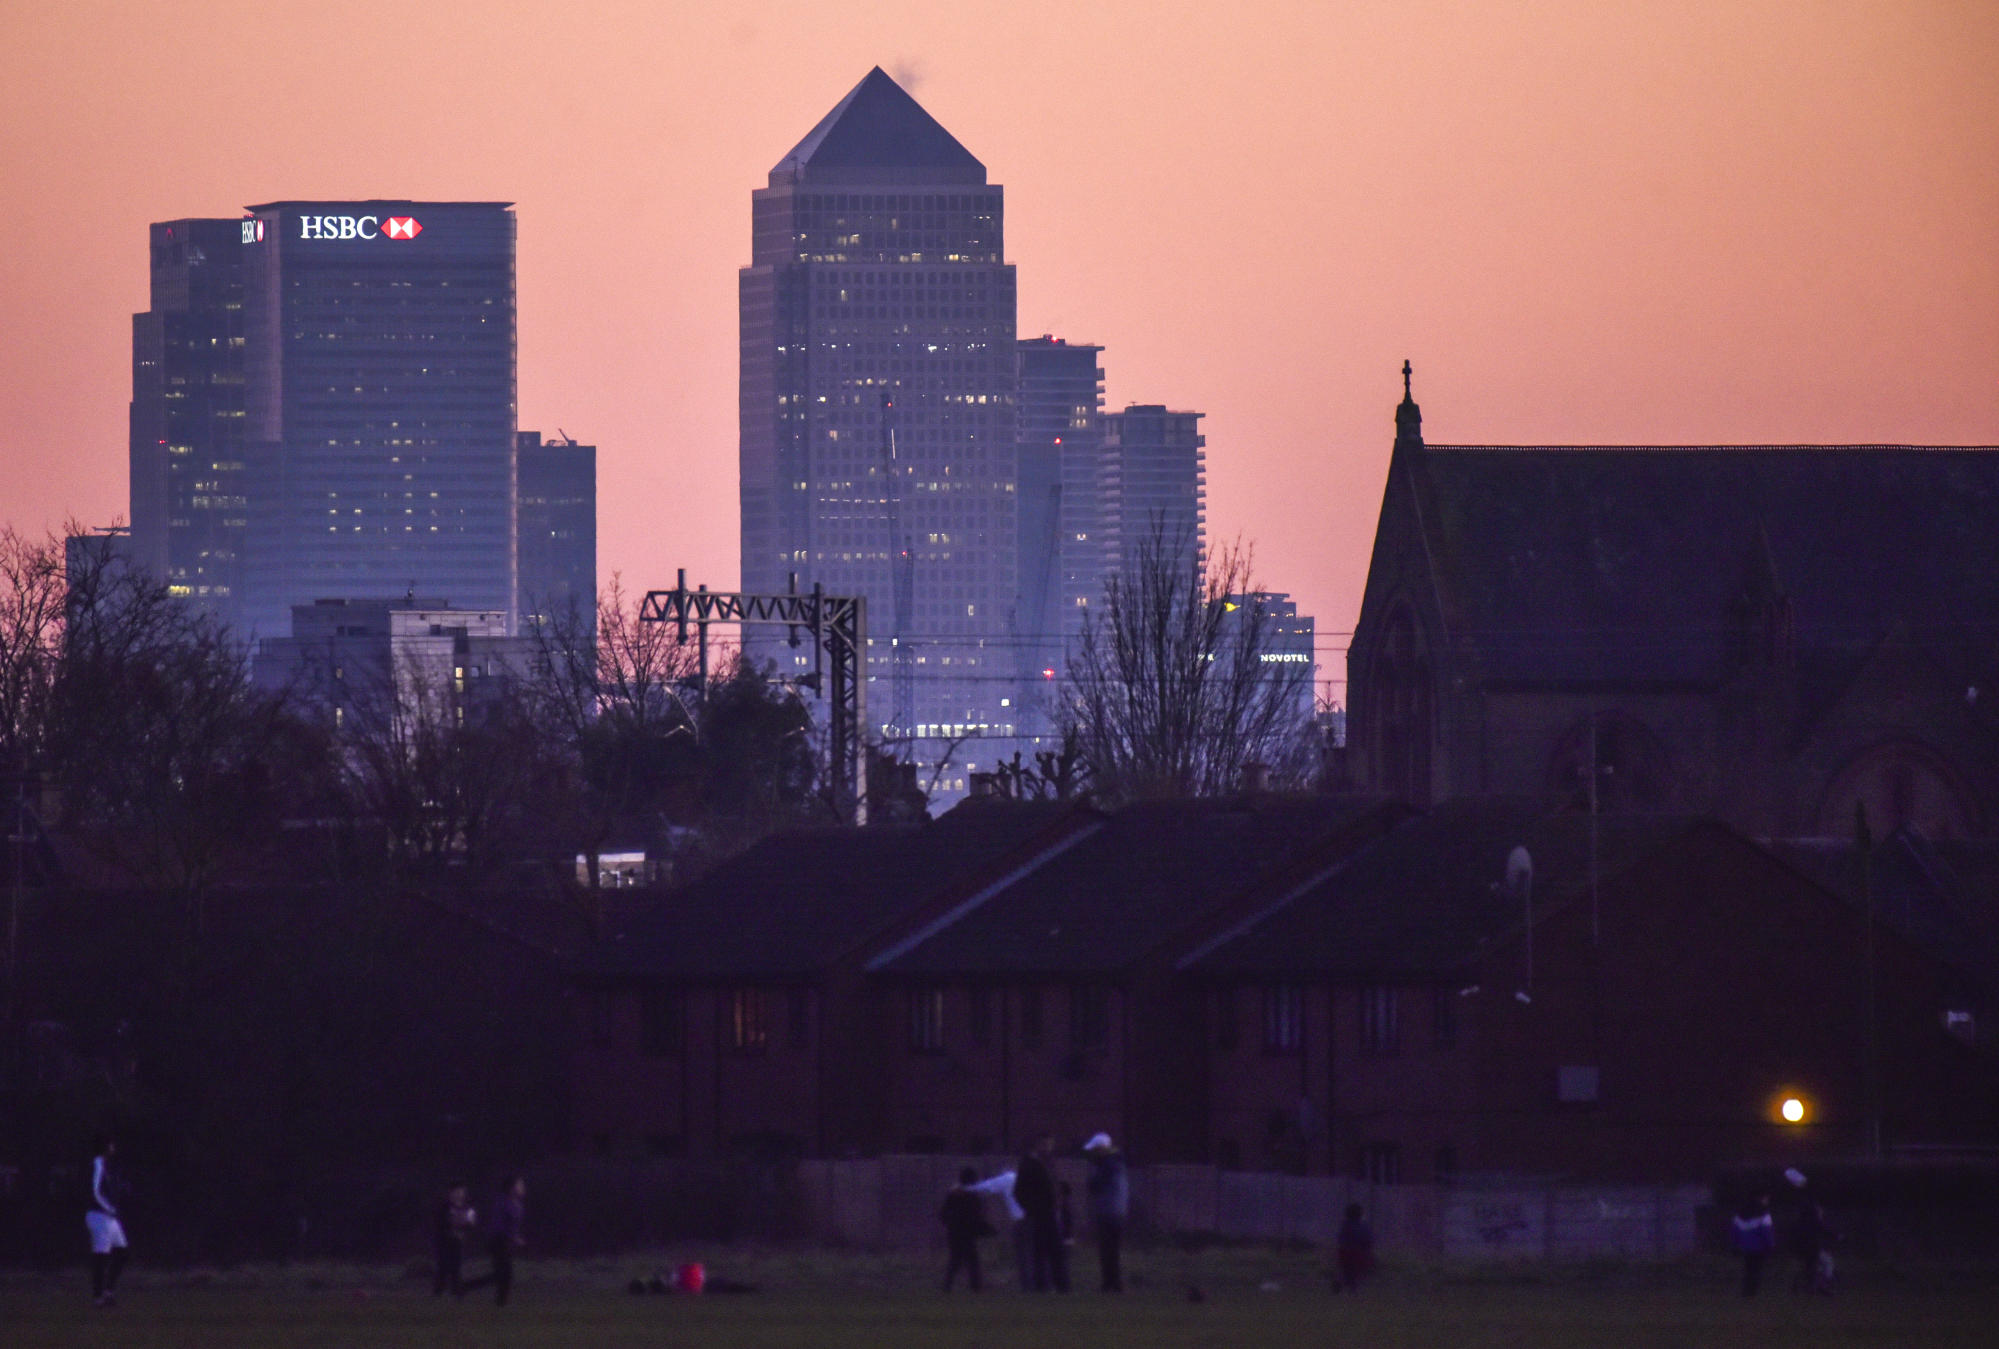 Brexit: Over 440 finance firms move jobs out of UK and £900bn flees to EU